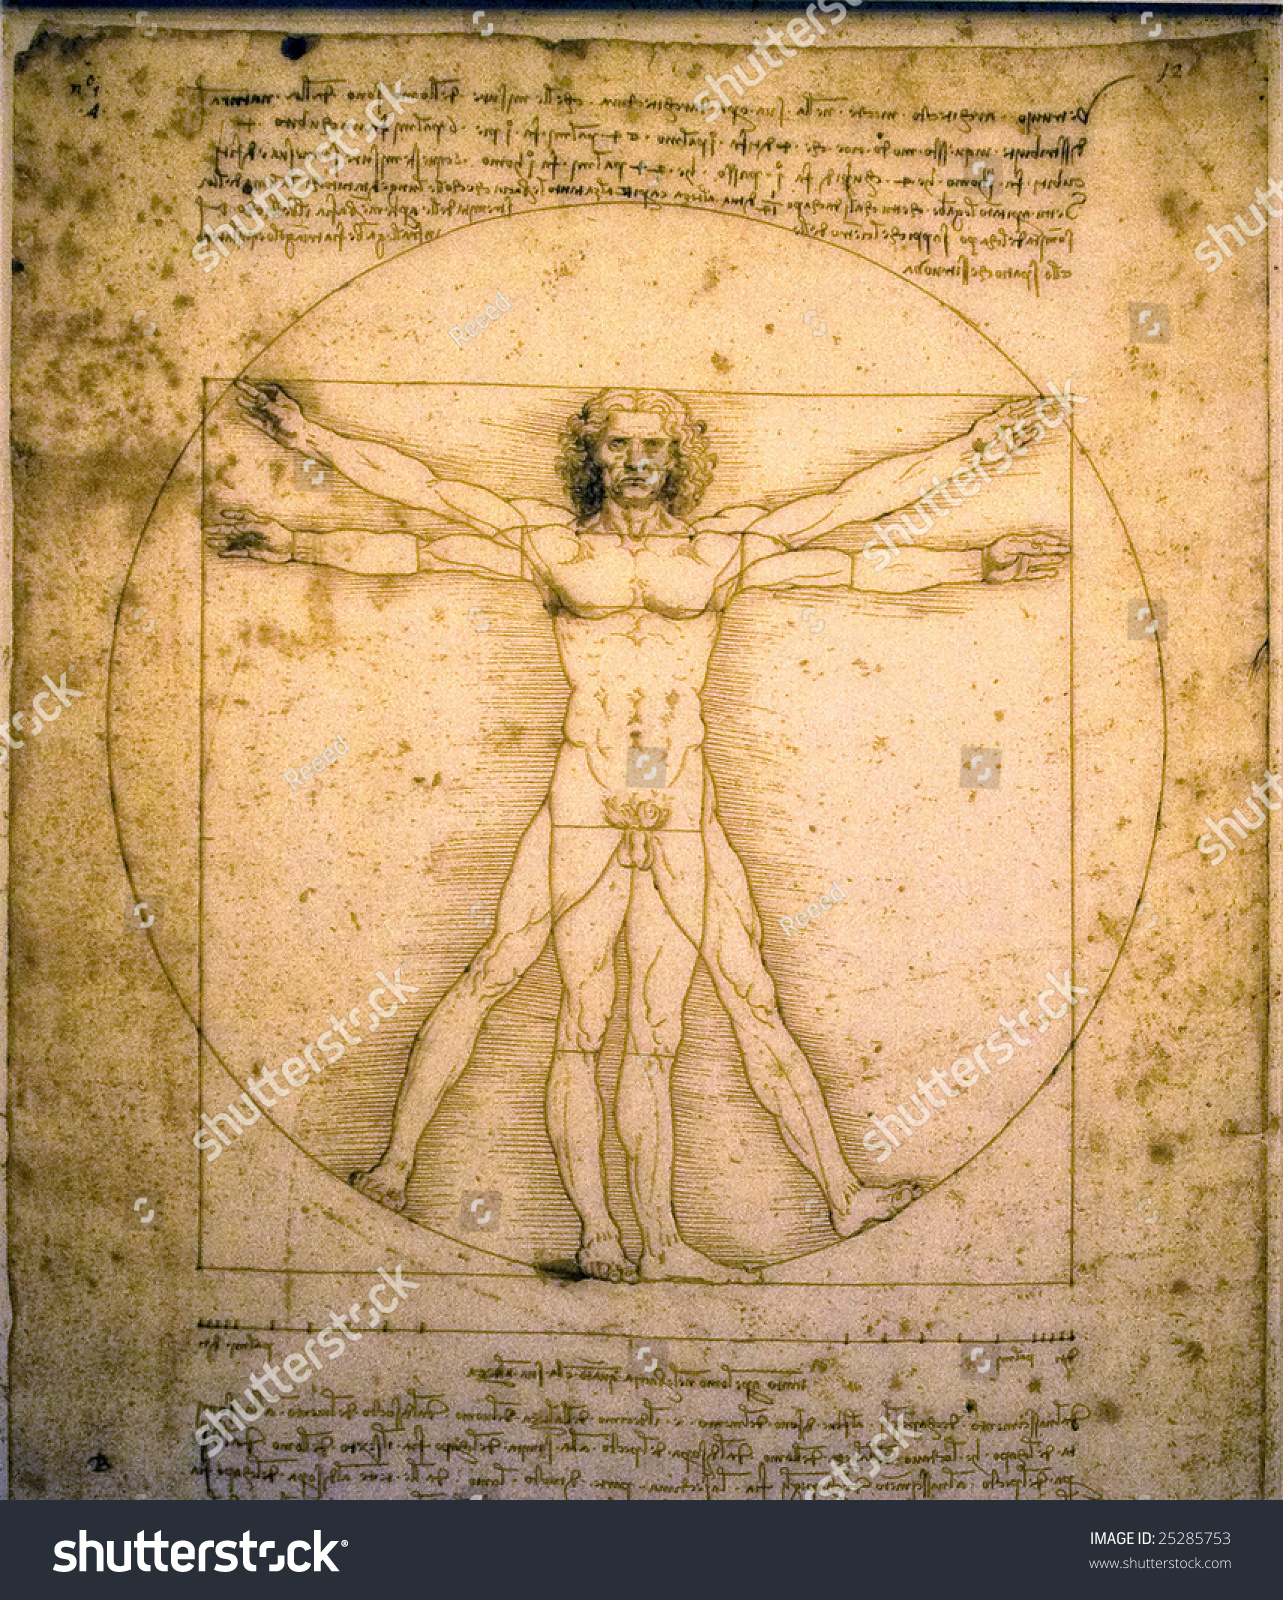 vitruvian man leonardo da vinci stock photo 25285753 shutterstock. Black Bedroom Furniture Sets. Home Design Ideas